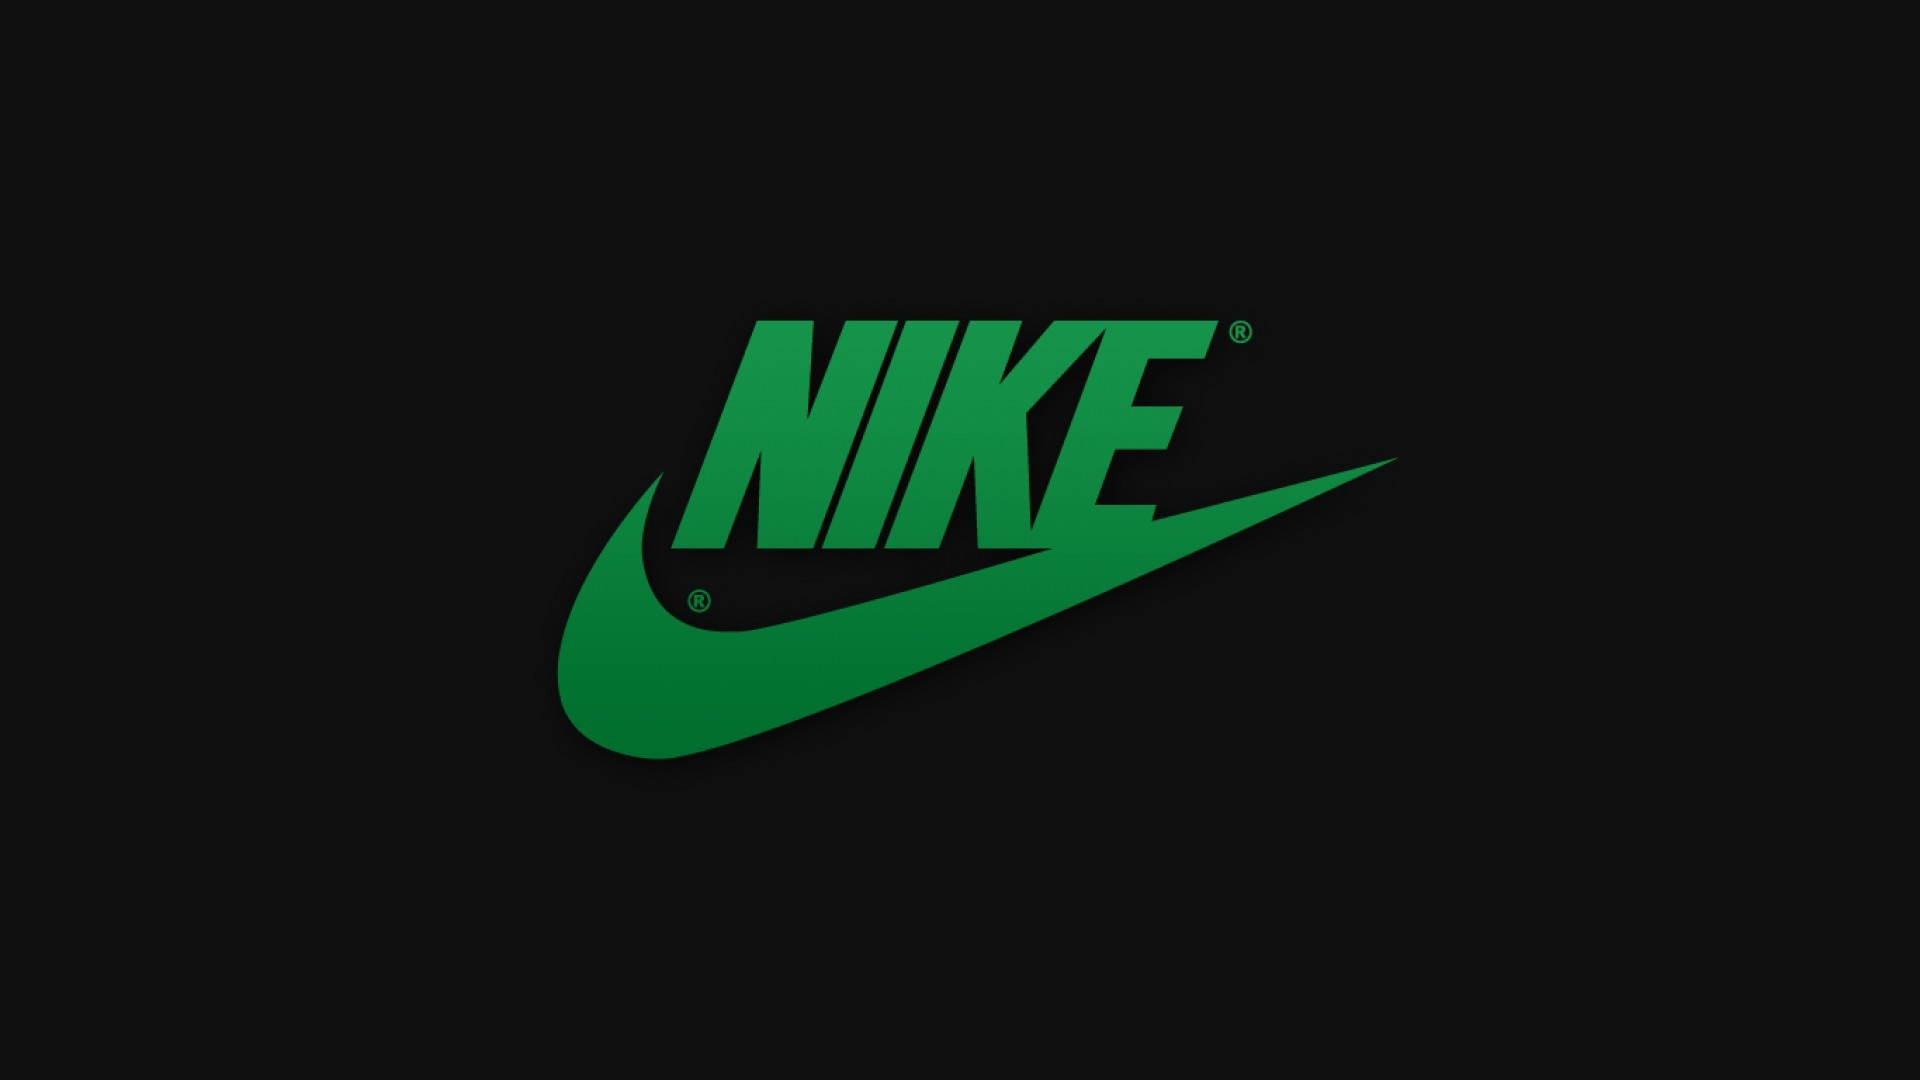 Download the following Fantastic Nike Logo Background 41386 by clicking the  orange button positioned underneath the